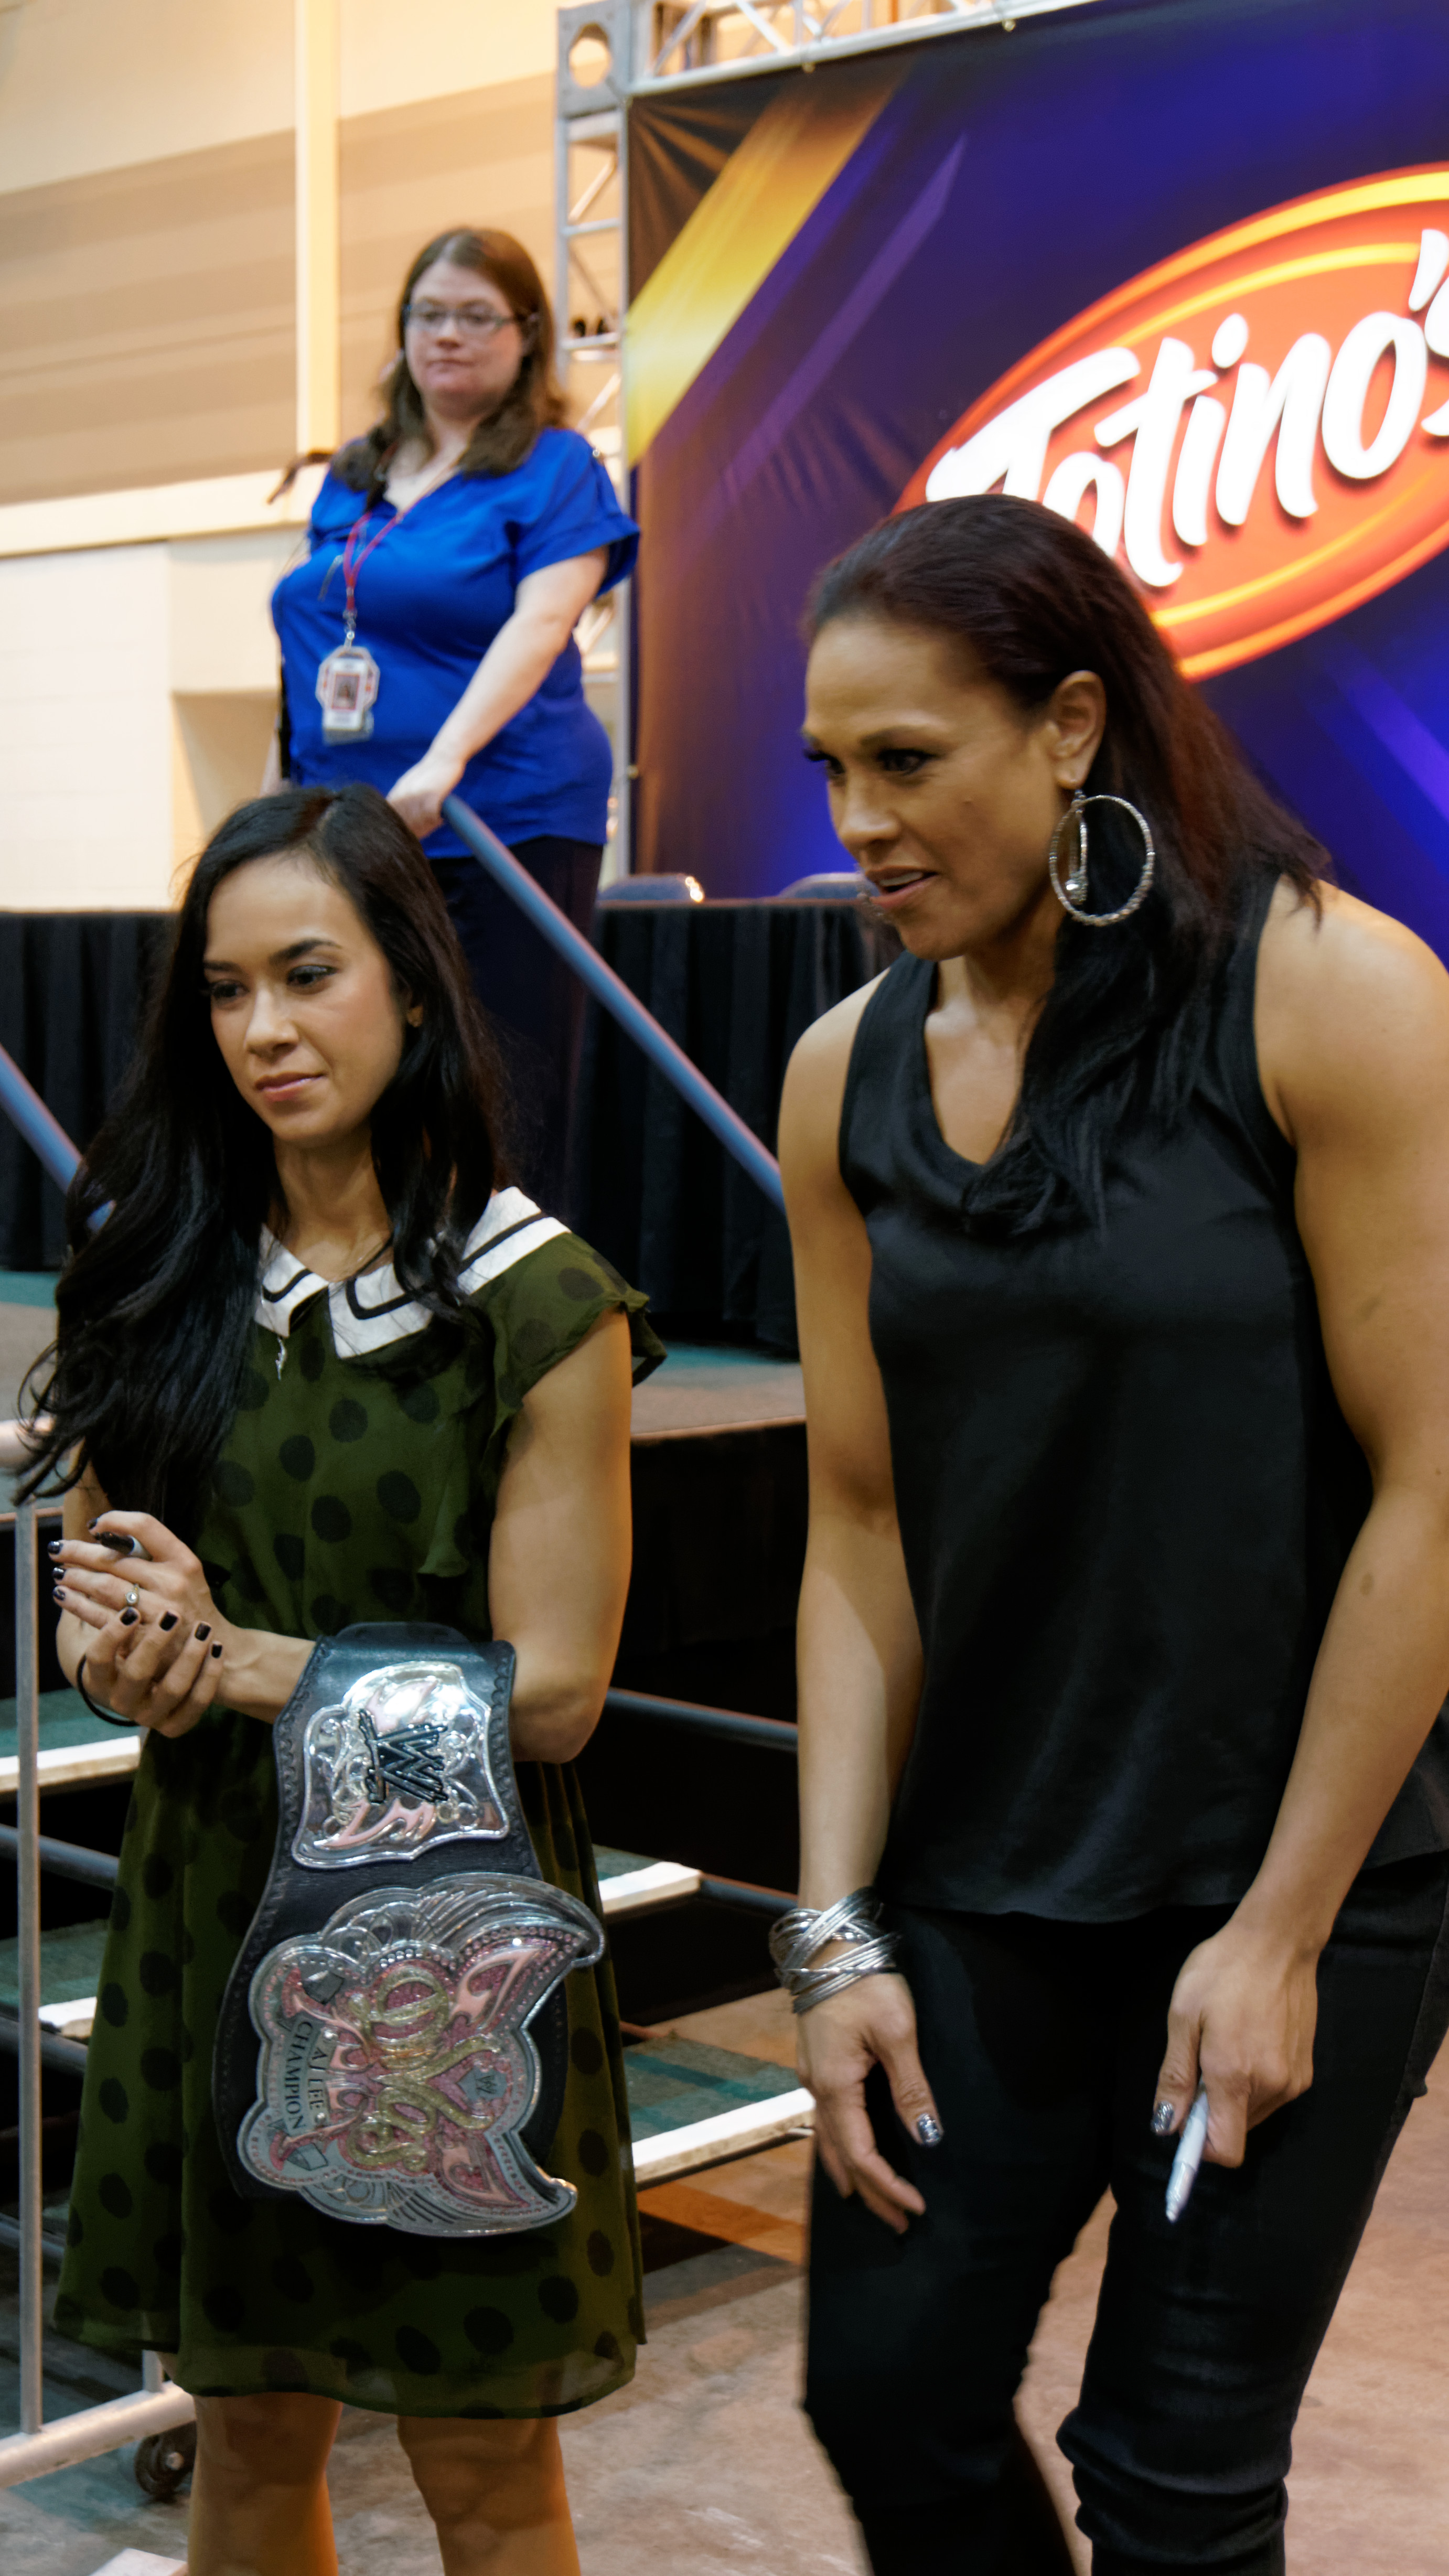 XXX Axxess 2014-04-04 18-56-18 NEX-6 7356 DxO (13910550382).jpg 2014-04-04_18-56-18_NEX-6_7356_DxO Date 4 April 2014, 18:56 Source 2014-04-04_18-56-18_NEX-6_7356_DxO